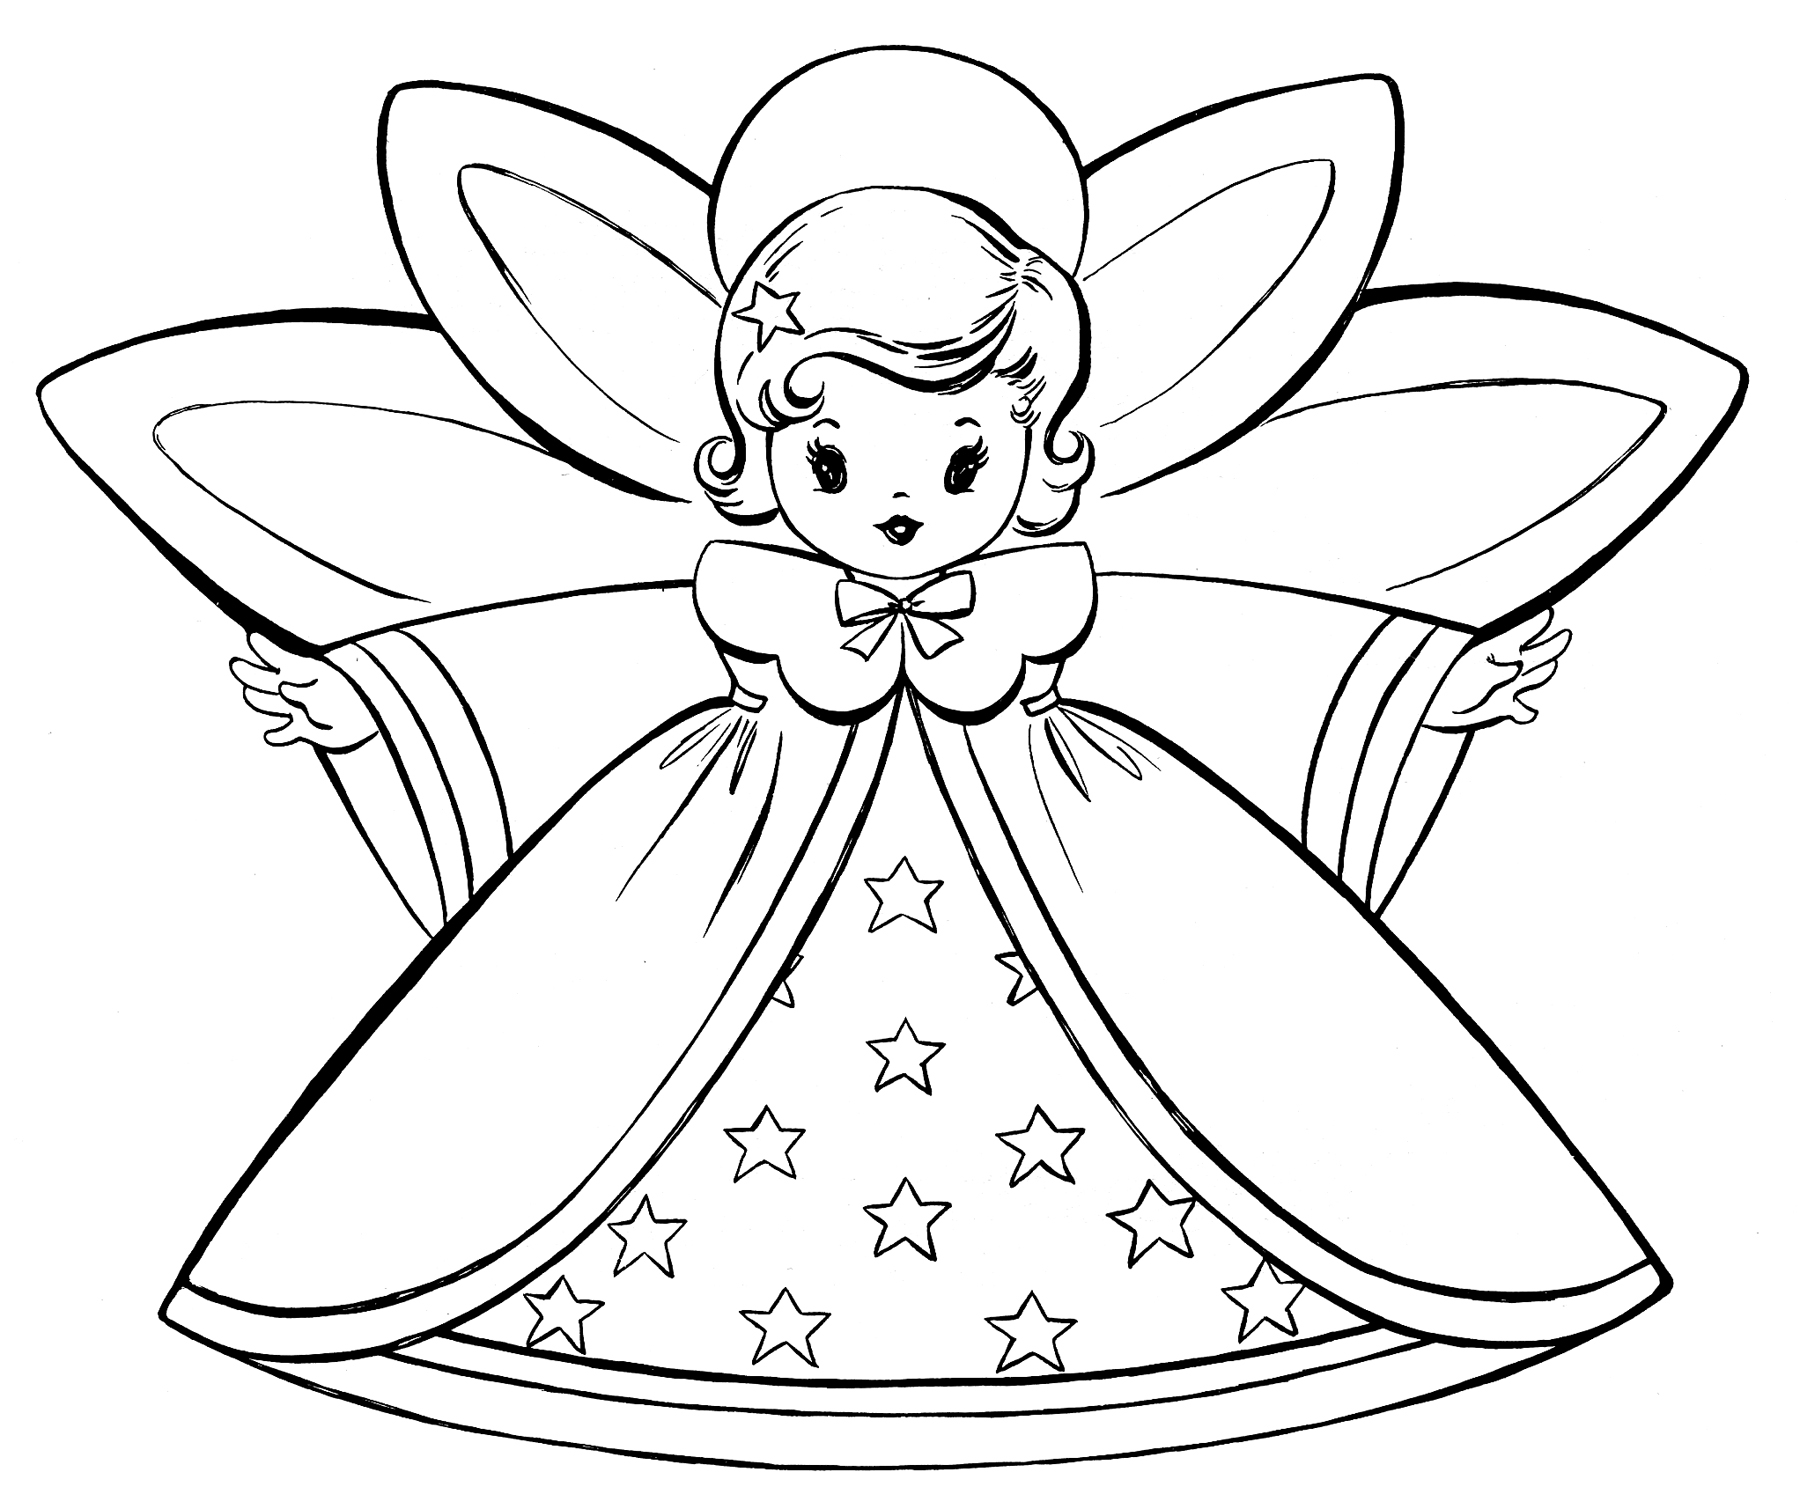 Angels clipart colouring. Free christmas coloring pages